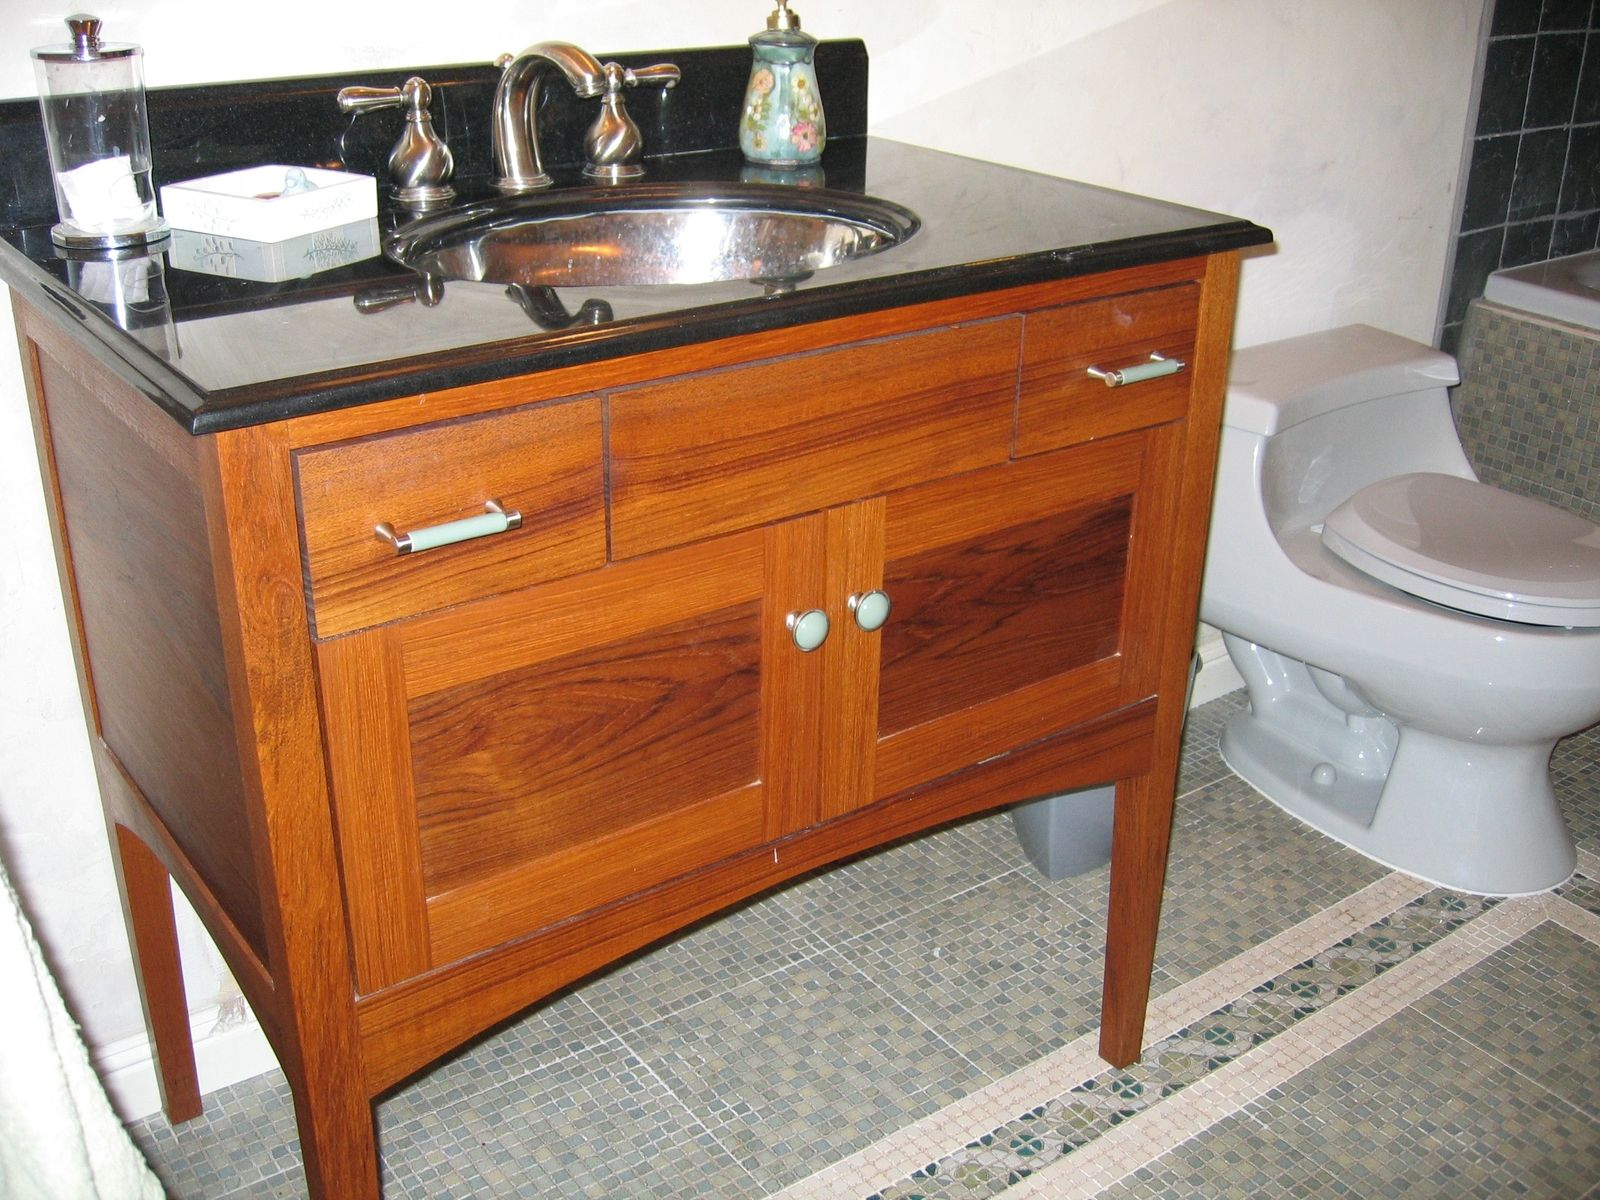 Custom Teak Furniture Style Bathroom Vanity Teak Bathroom Vanity Teak Bathroom Teak Vanity